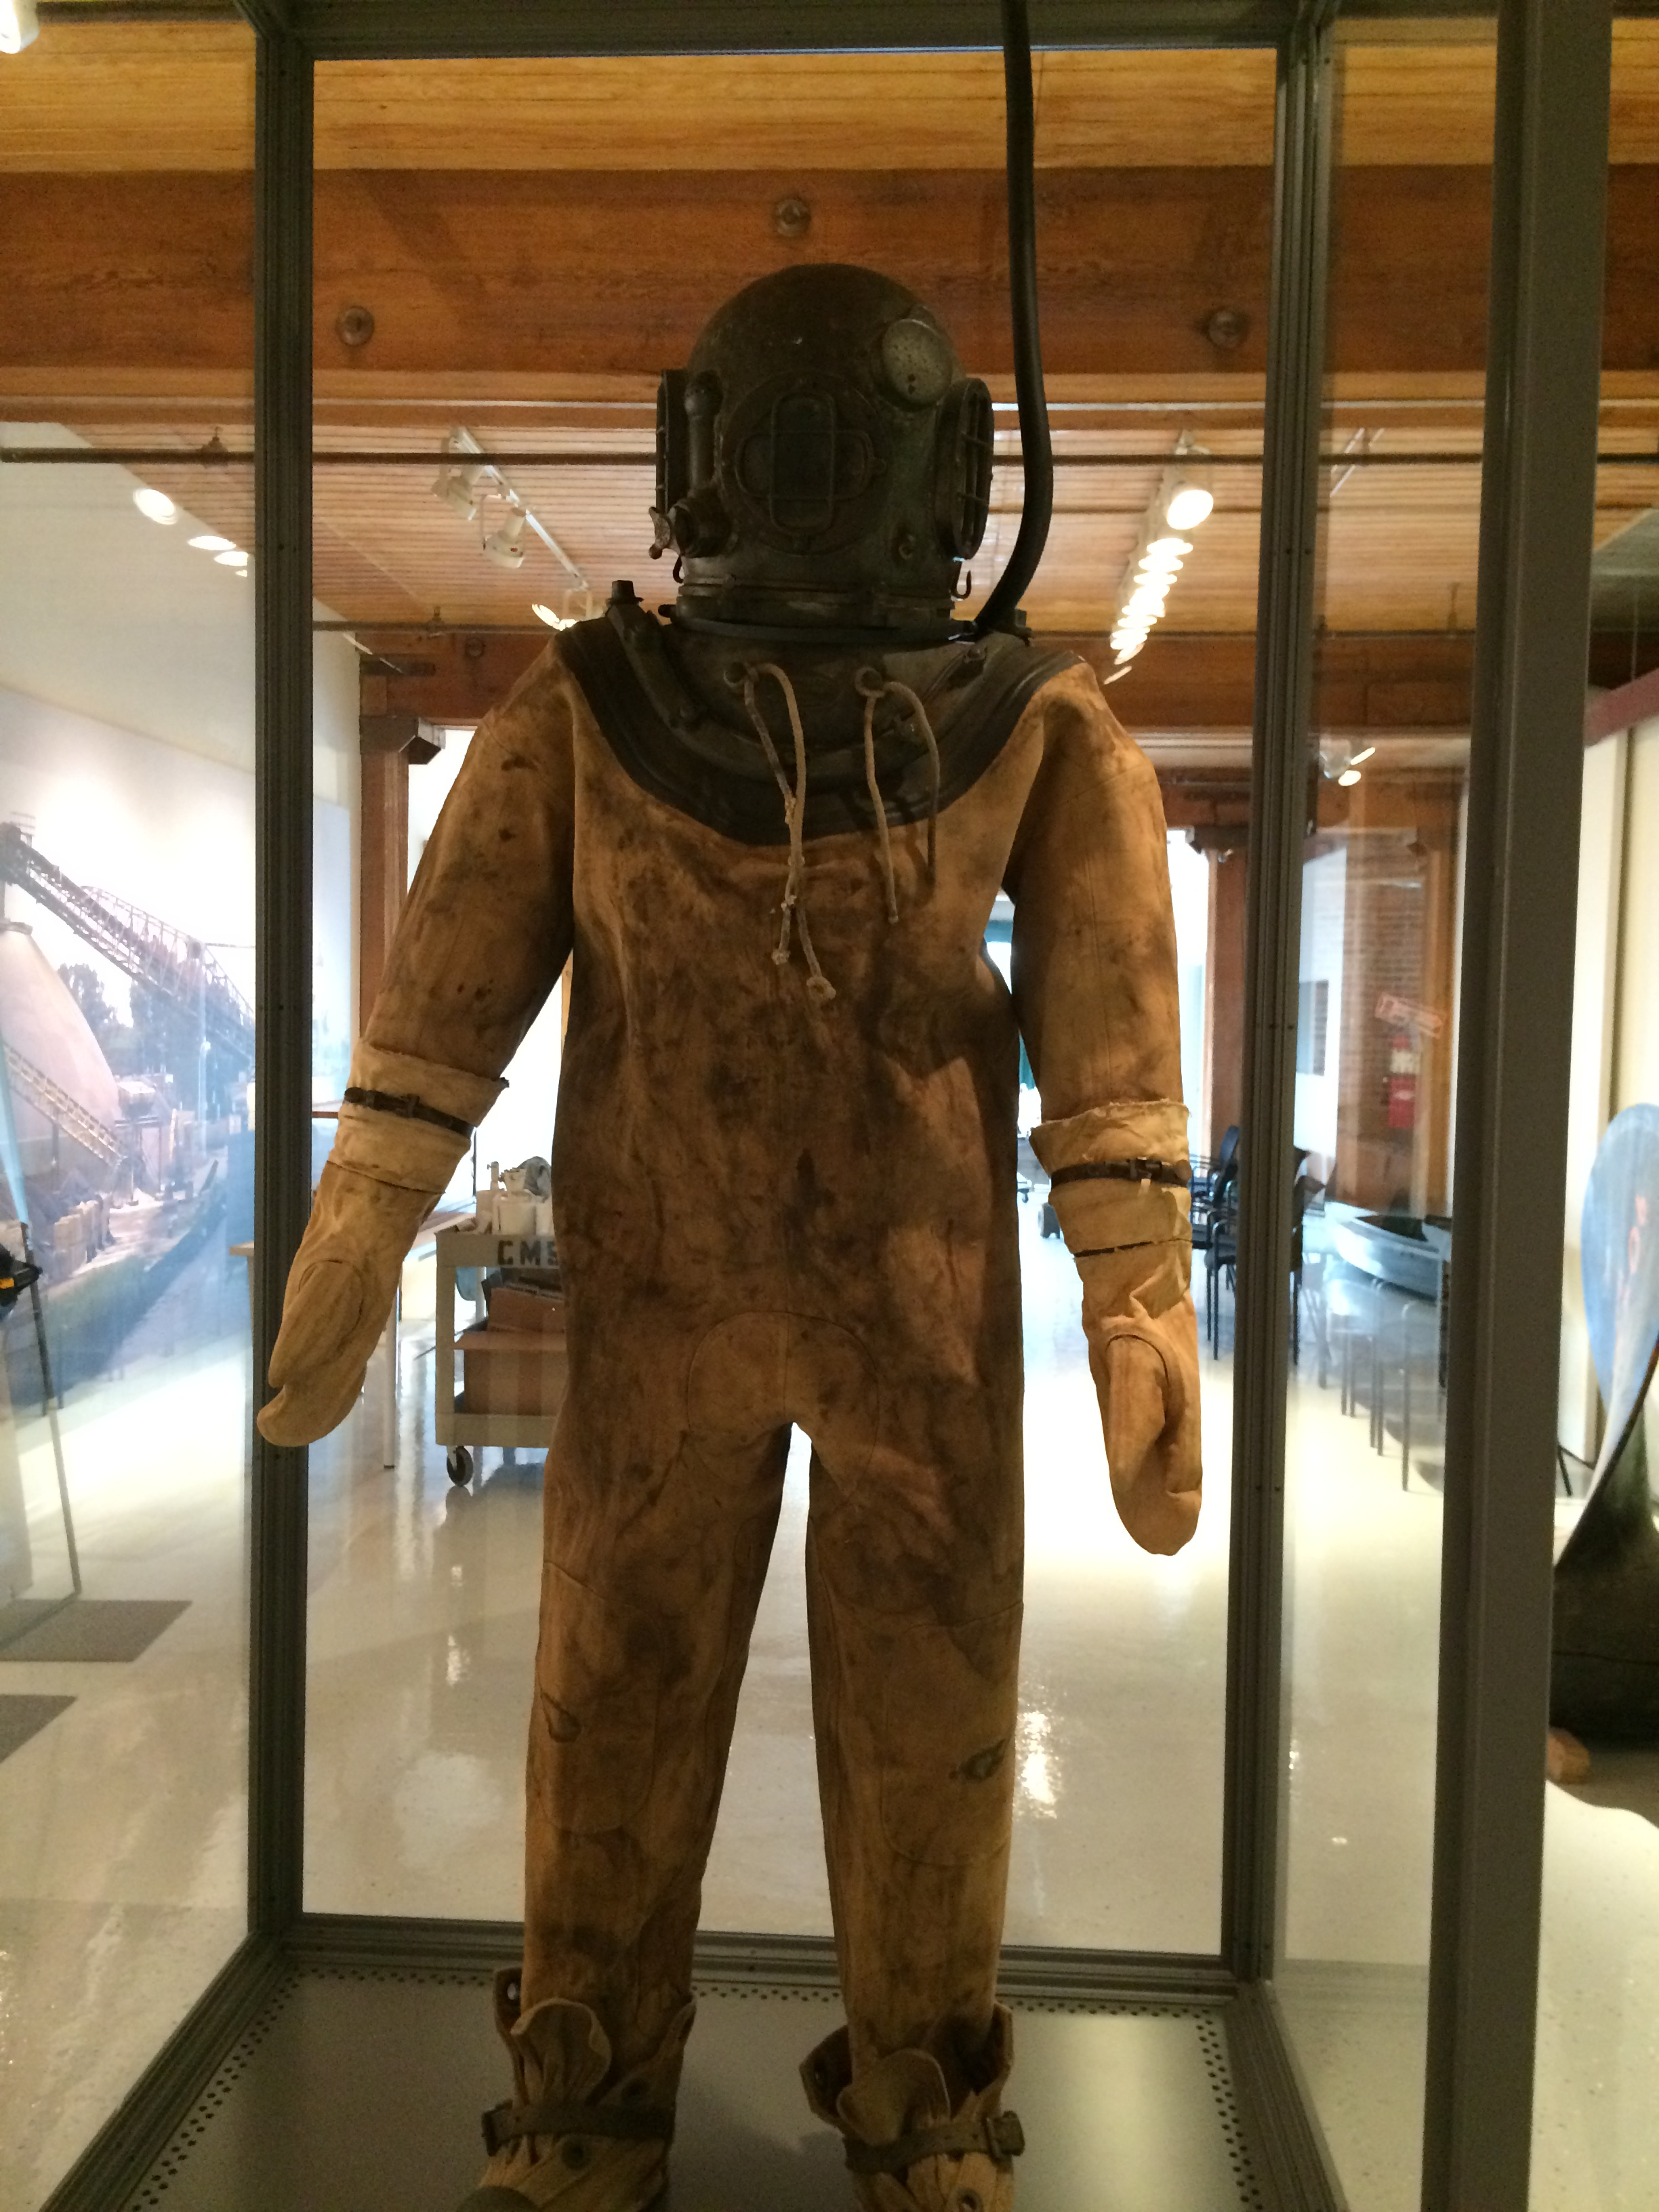 One of the museum's most popular items is this original dive suit used during recovery efforts following the U.S.S. Eastland disaster in 1915. The ship capsized at port, killing over 800 people. Image courtesy of the Chicago Maritime Museum.